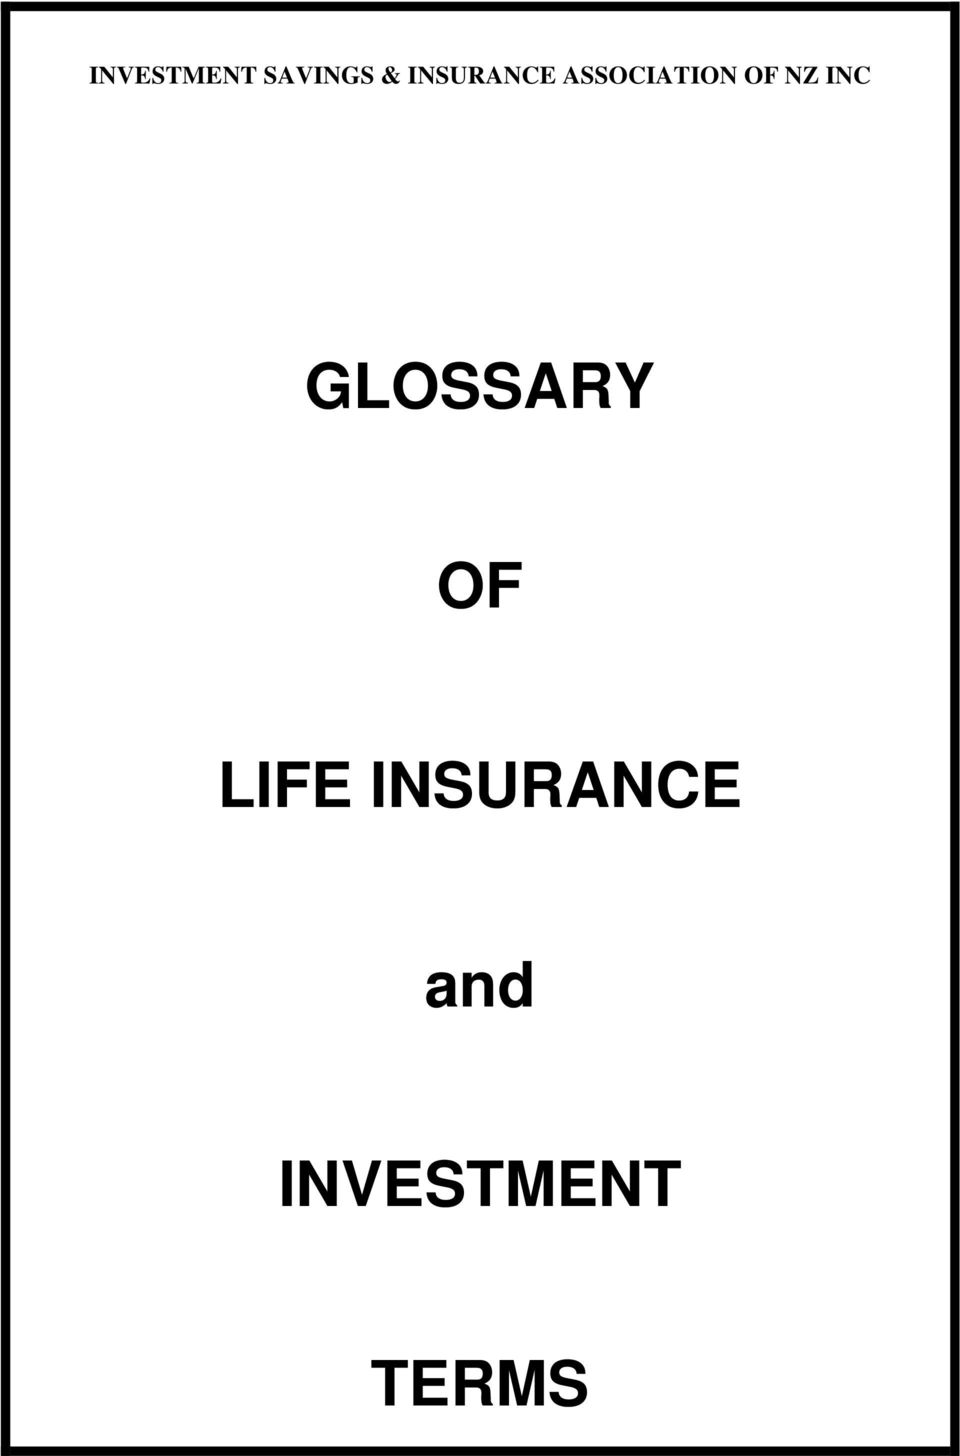 NZ INC GLOSSARY OF LIFE